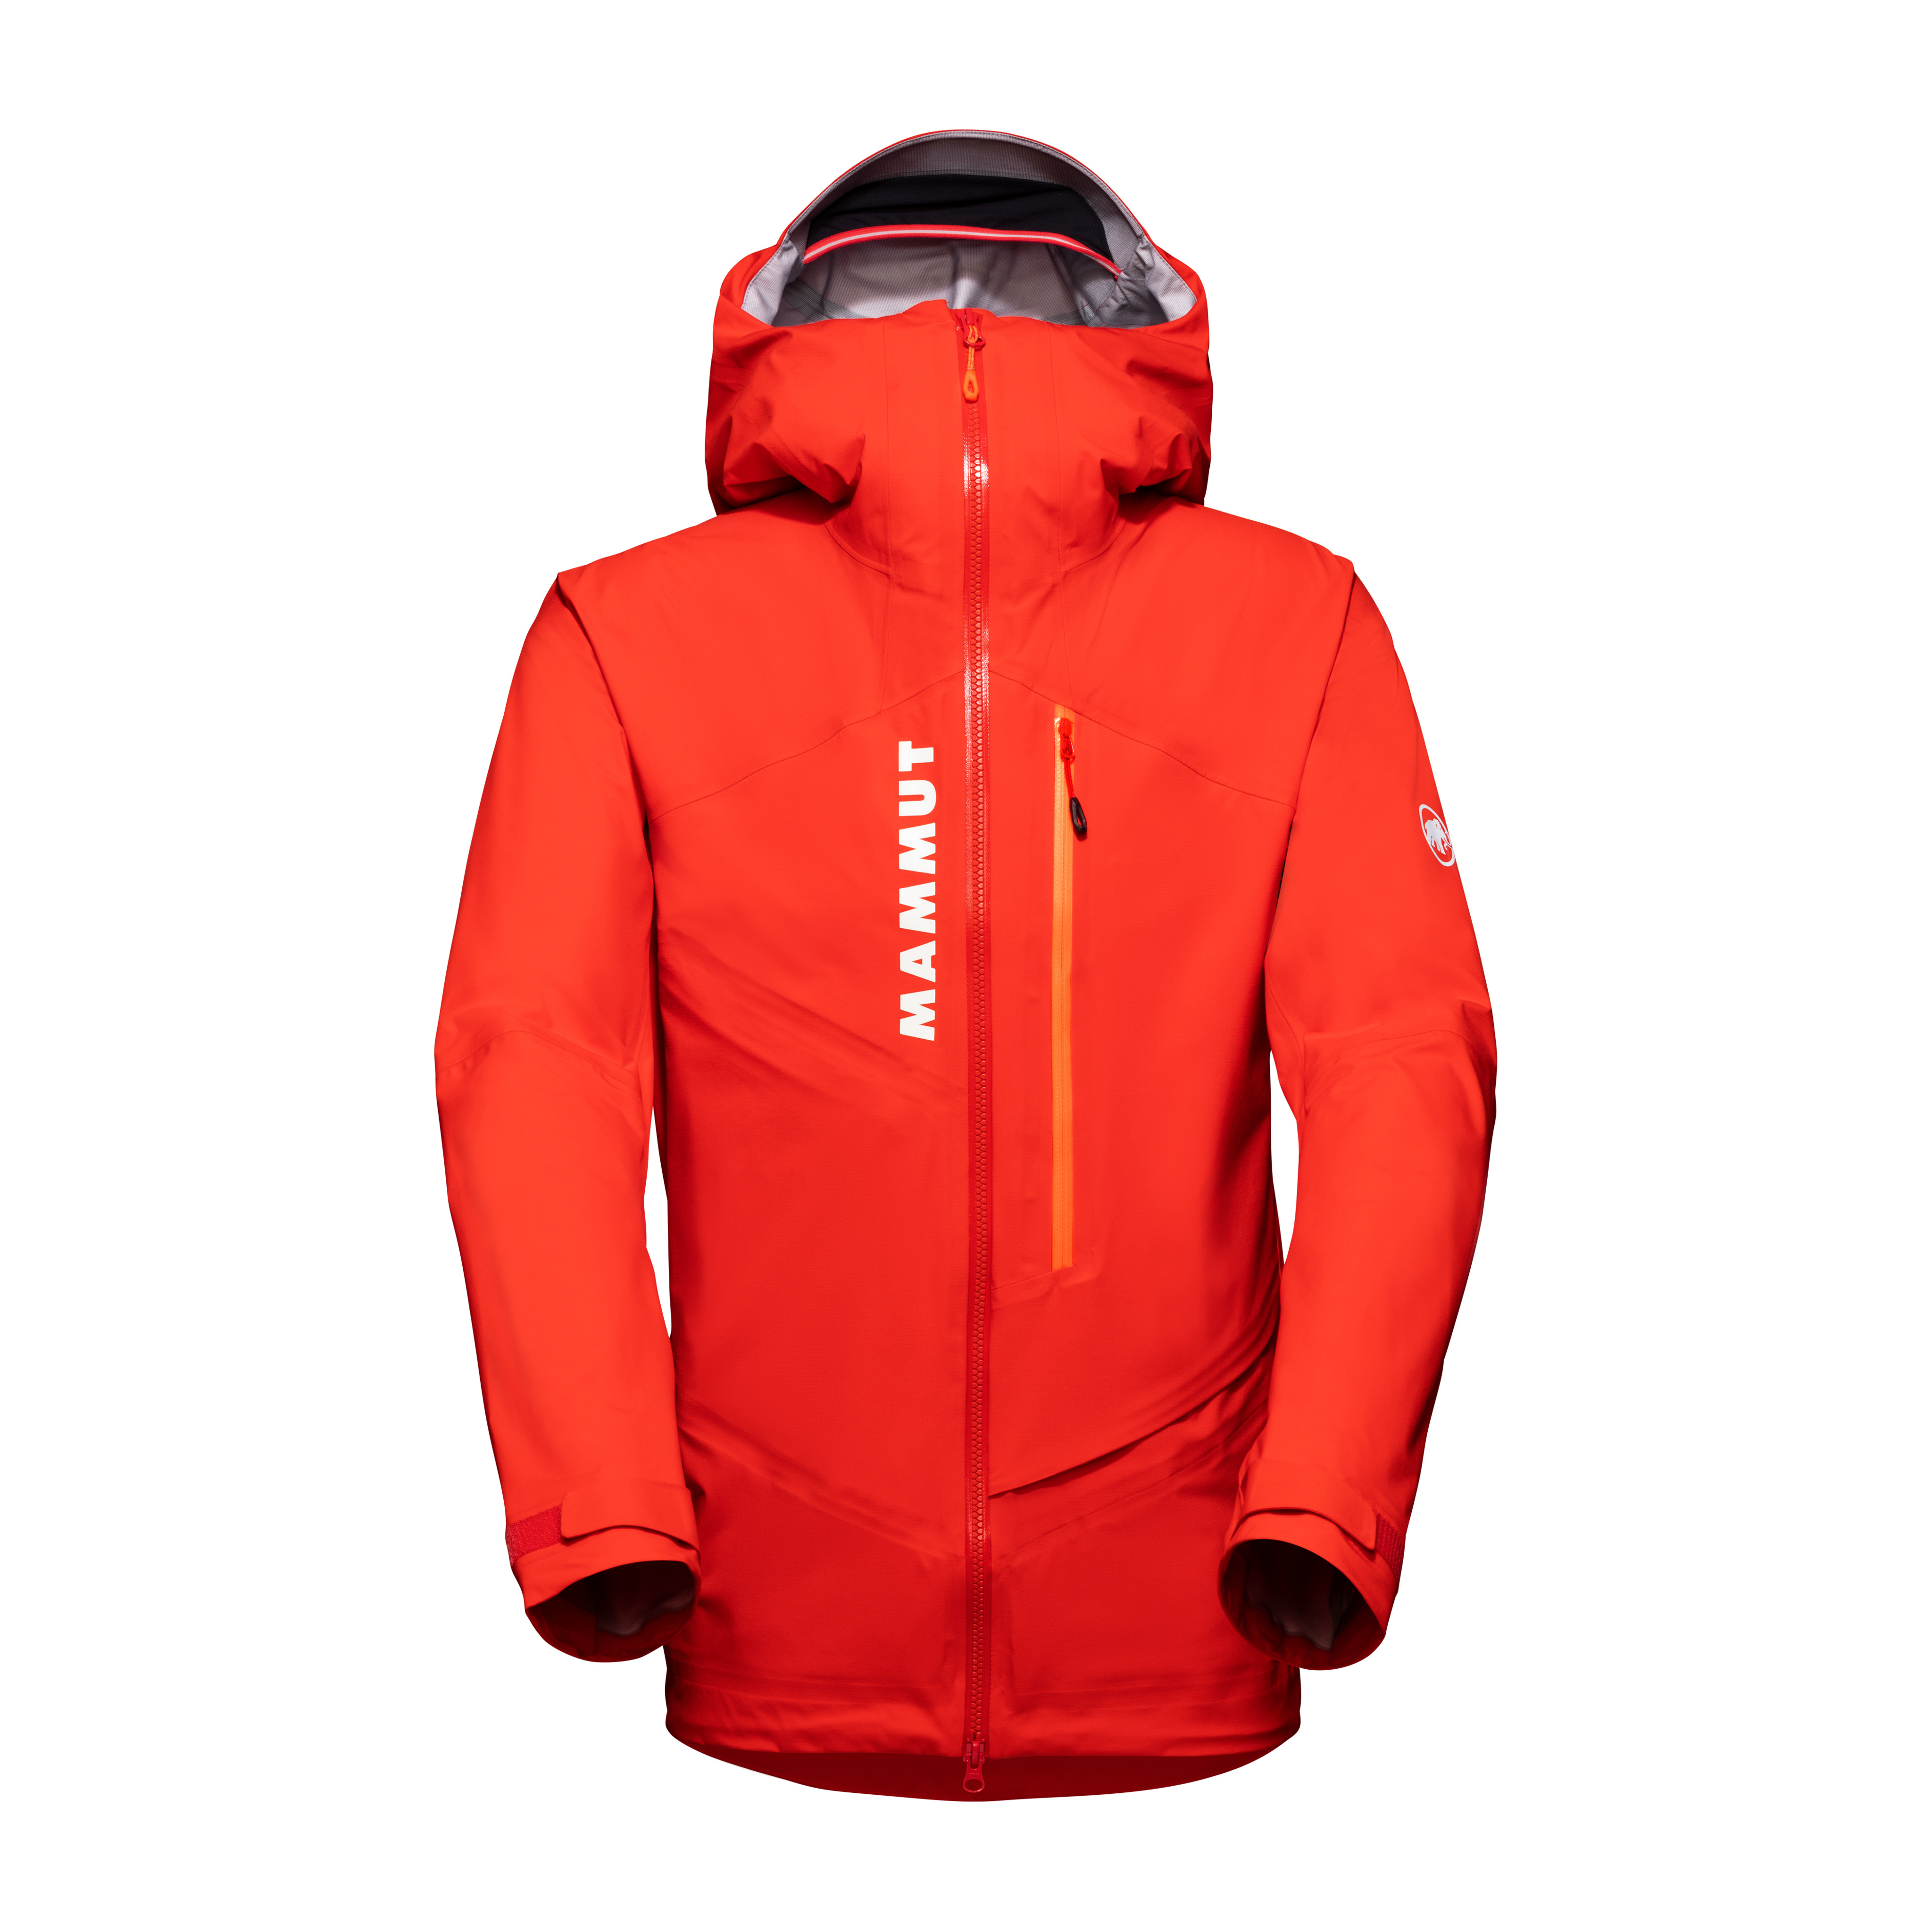 Aenergy Air HS Hooded Jacket Men - S, spicy thumbnail